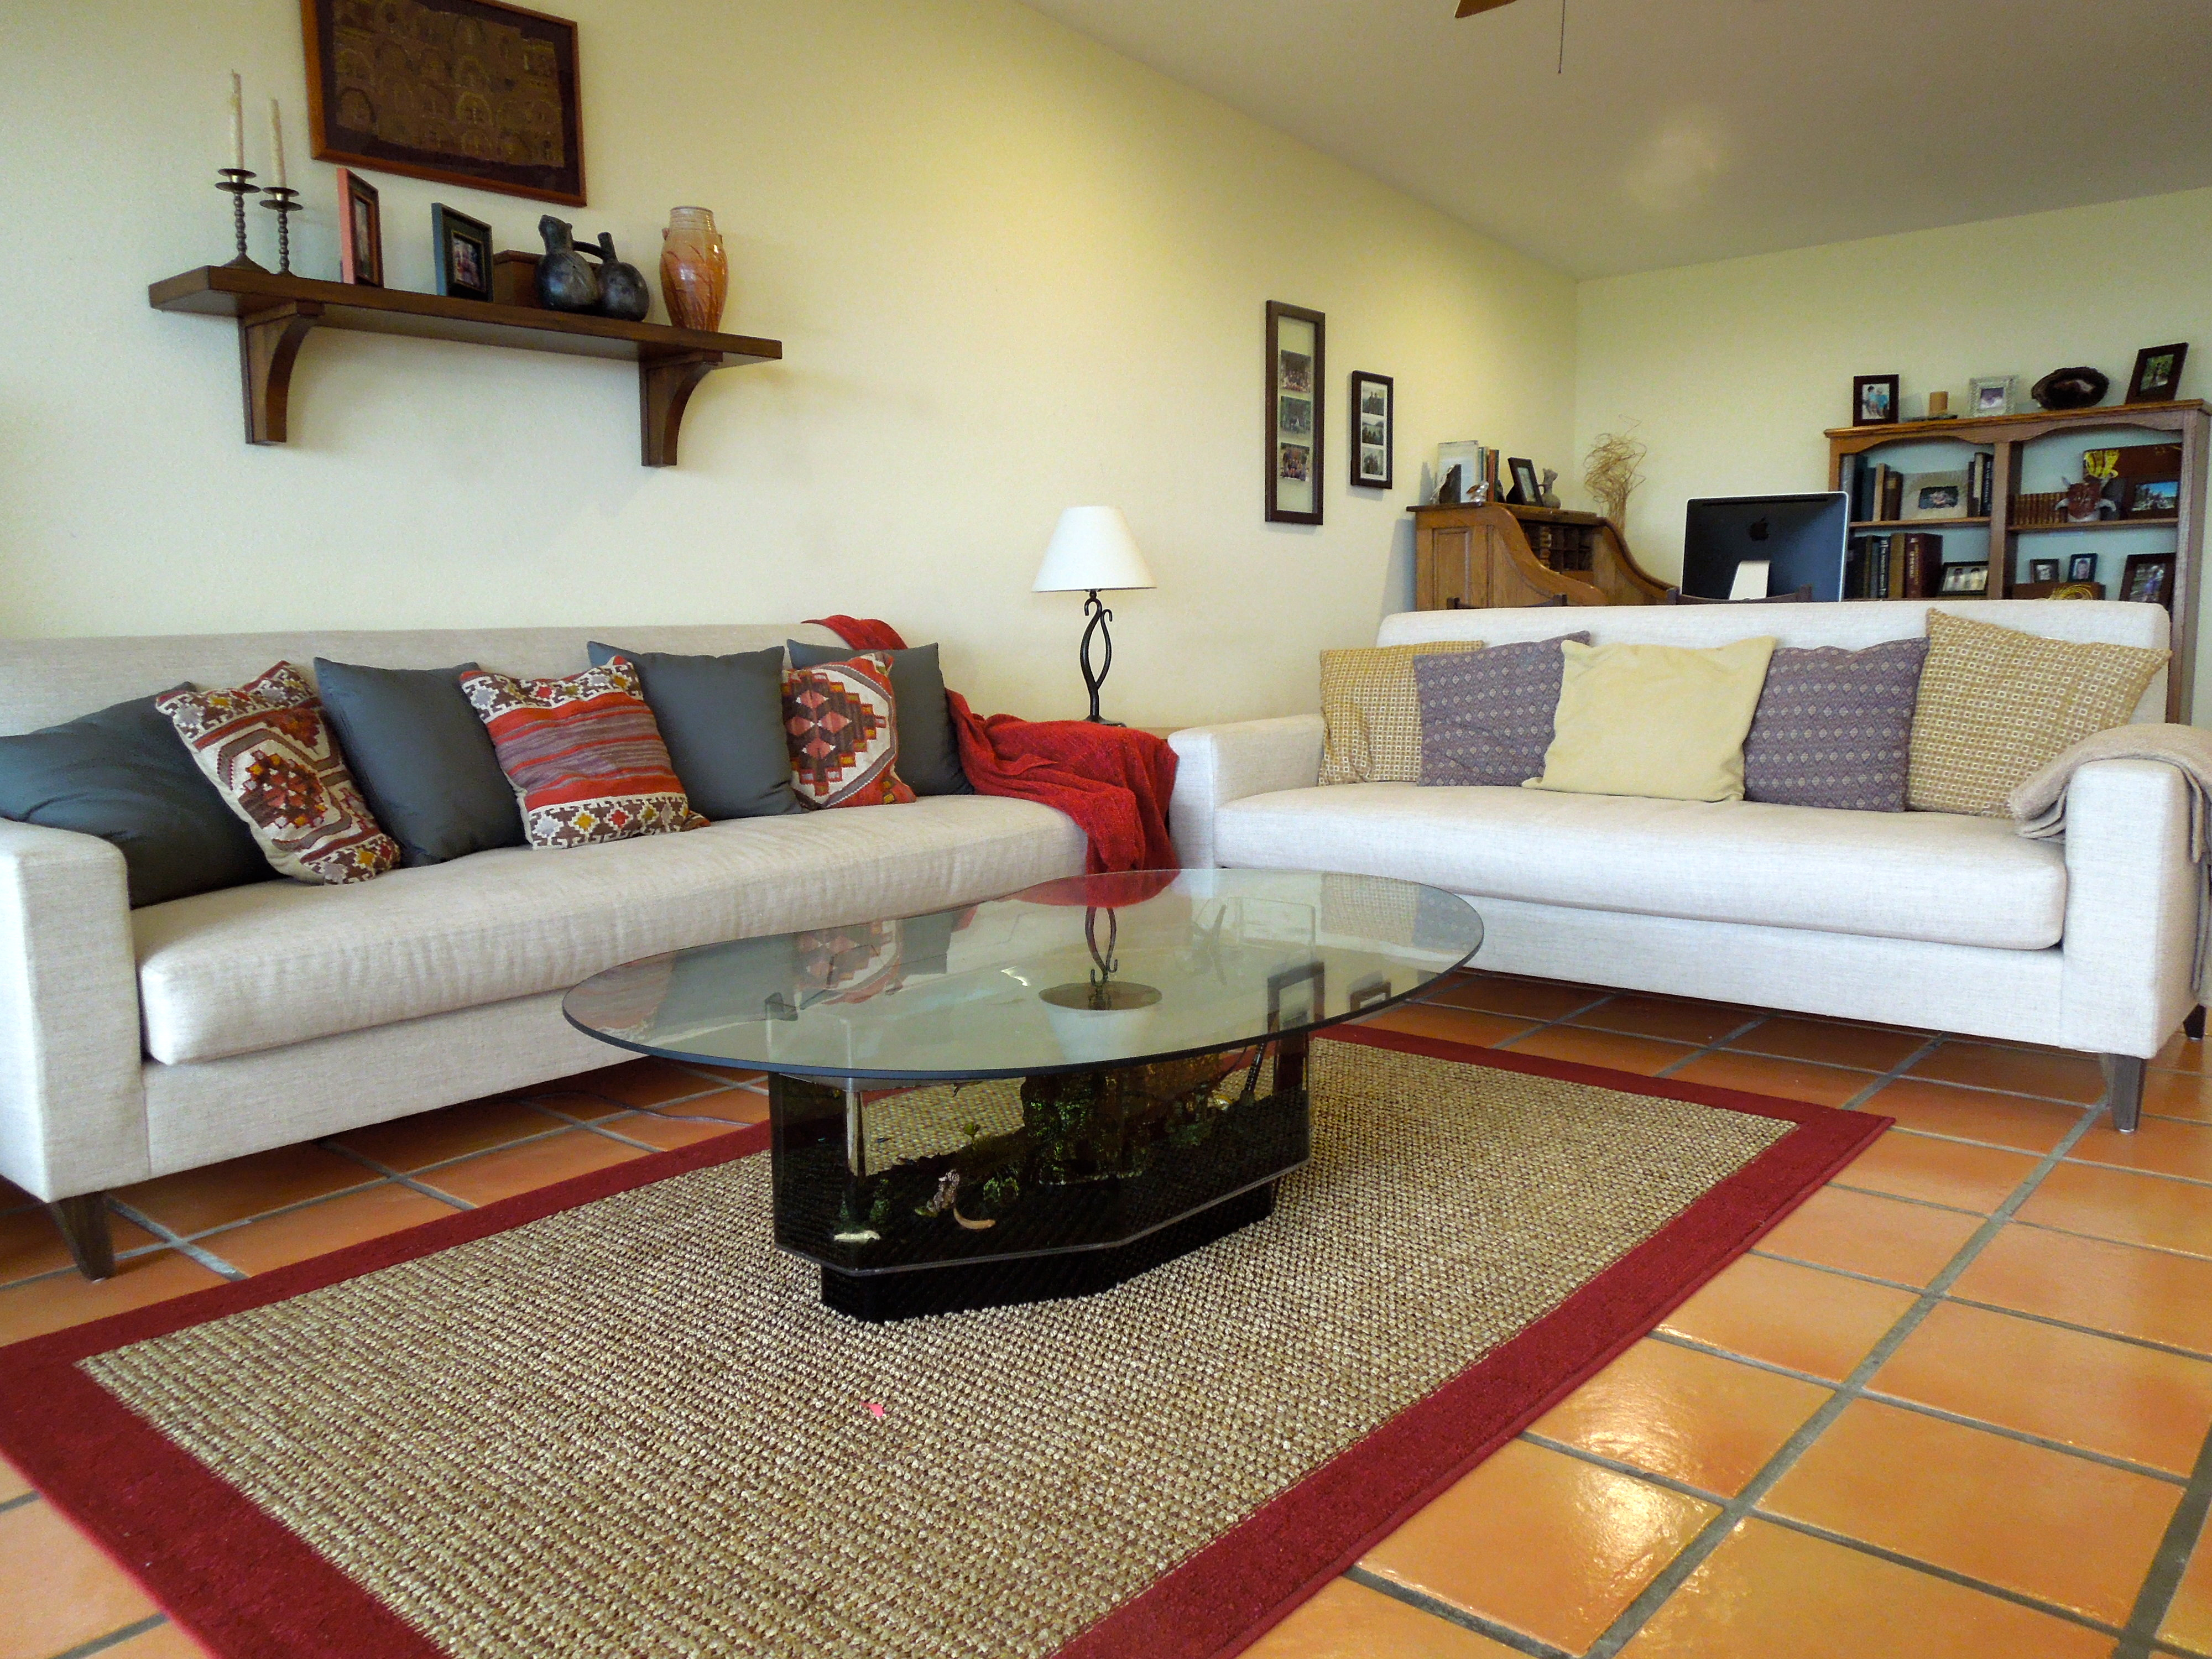 The Great Sofa Search, part 3 |